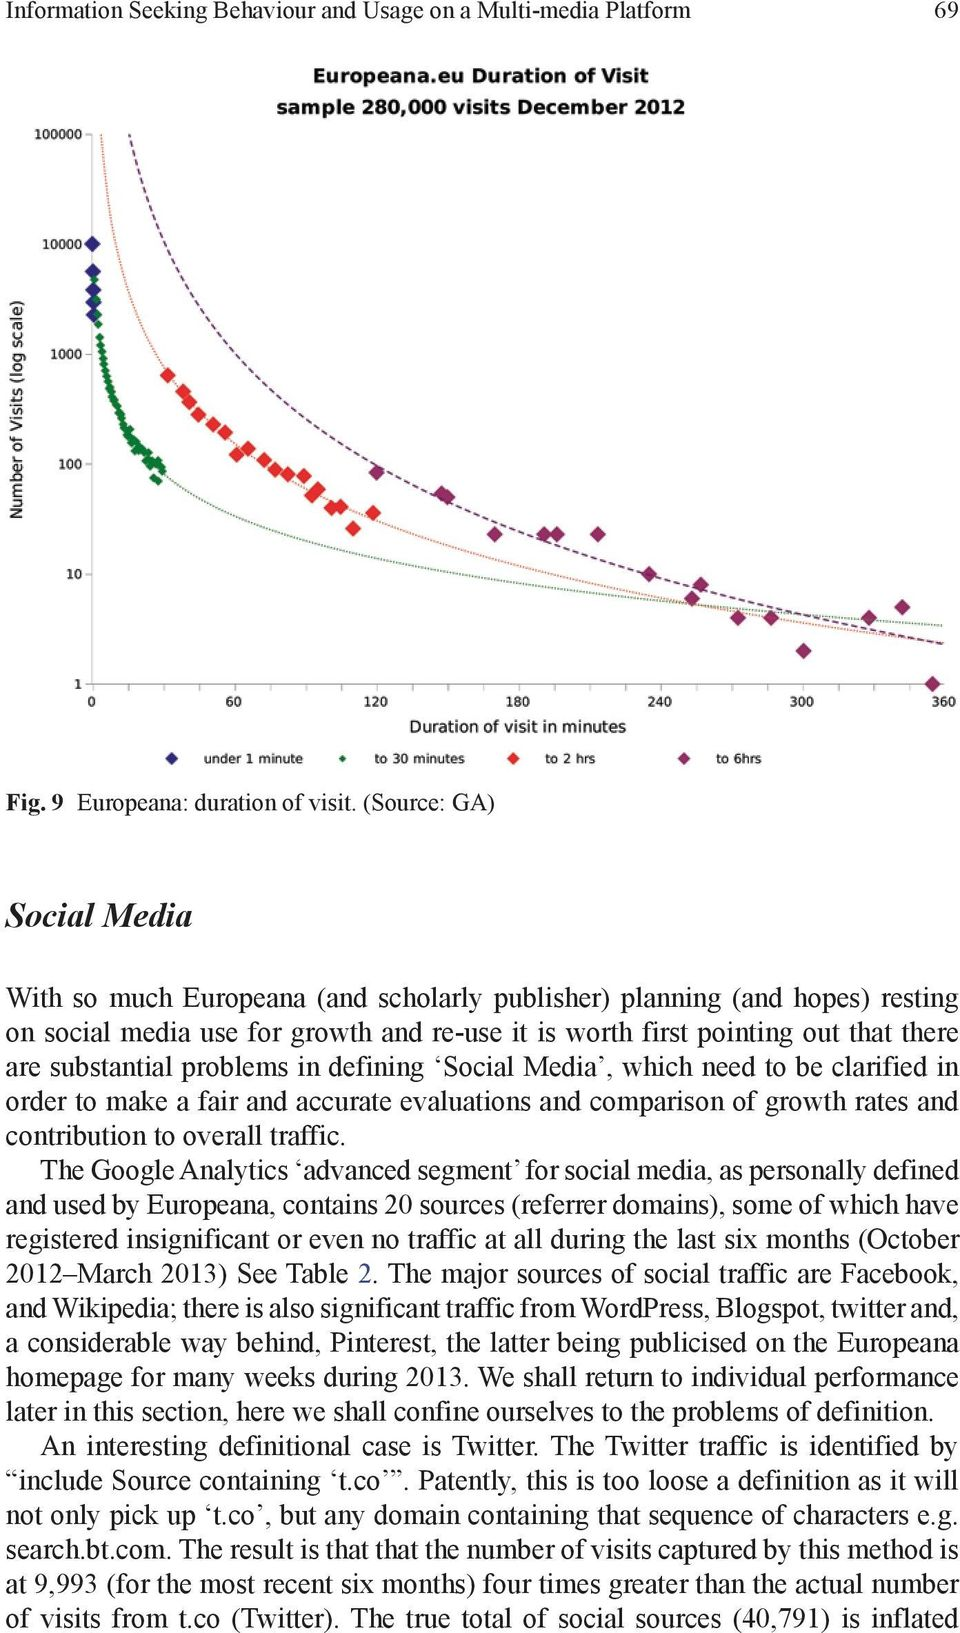 substantial problems in defining Social Media, which need to be clarified in order to make a fair and accurate evaluations and comparison of growth rates and contribution to overall traffic.